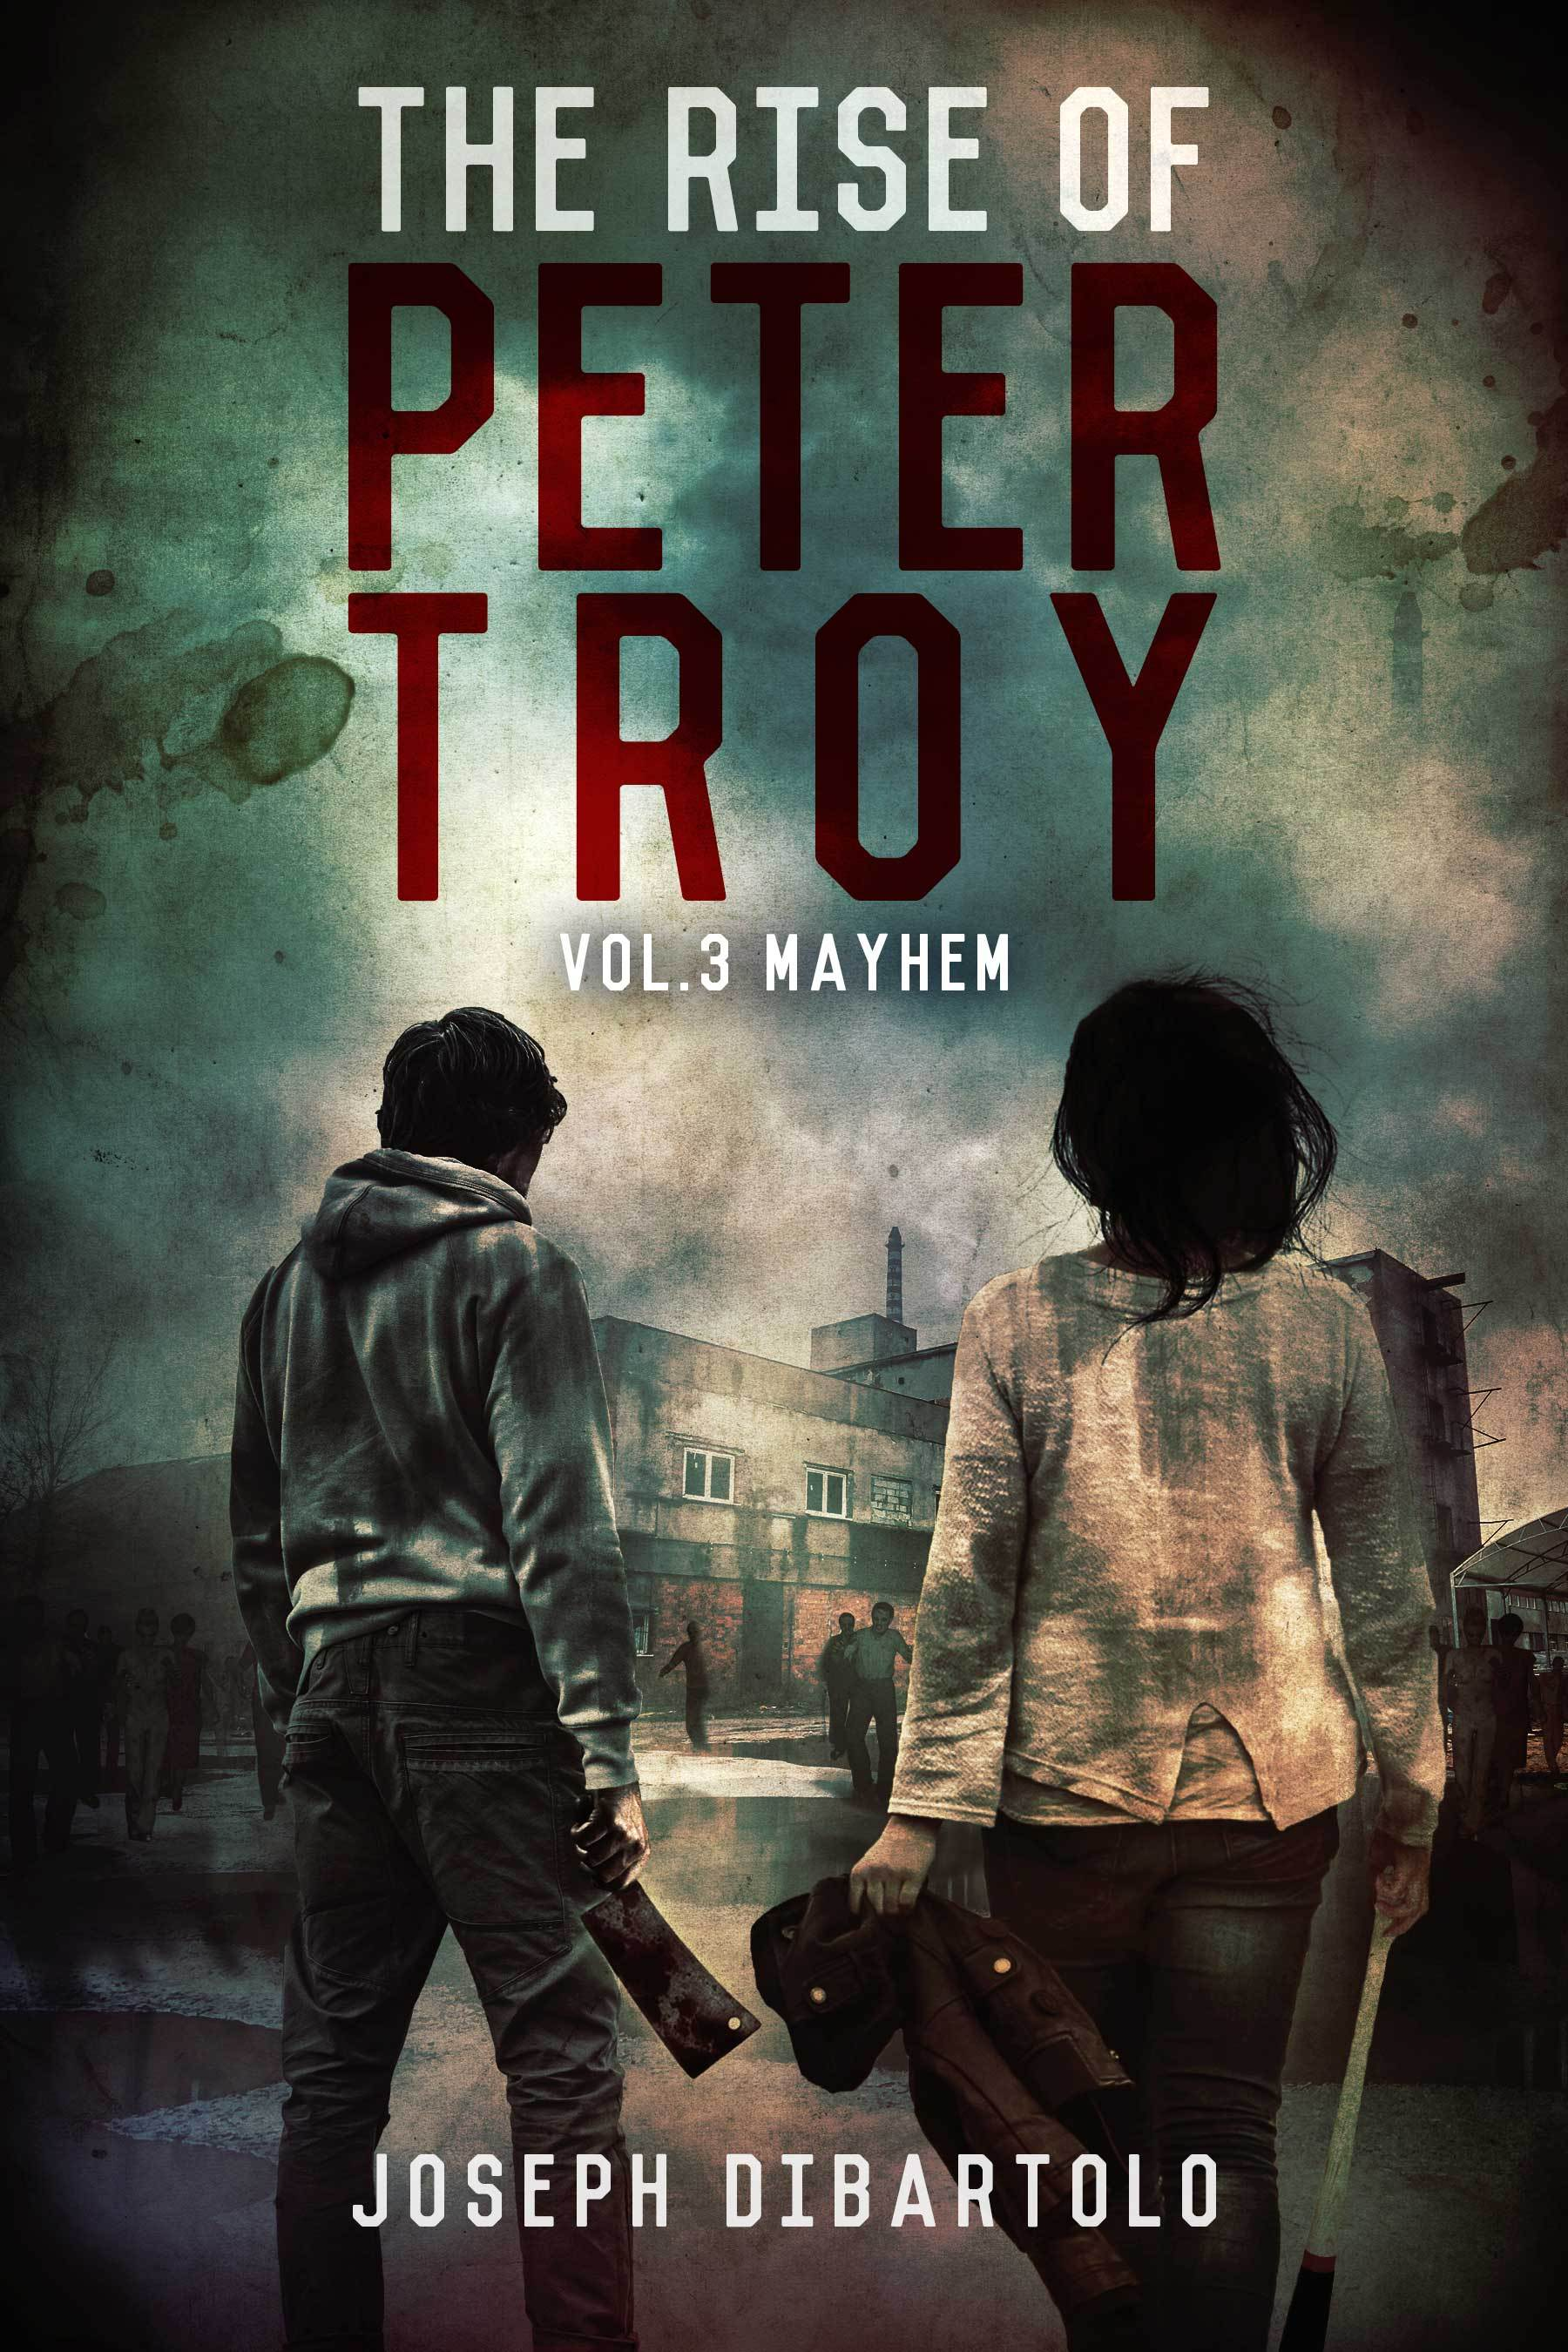 The Rise of Peter Troy (Vol.3 Mayhem) Joseph DiBartolo